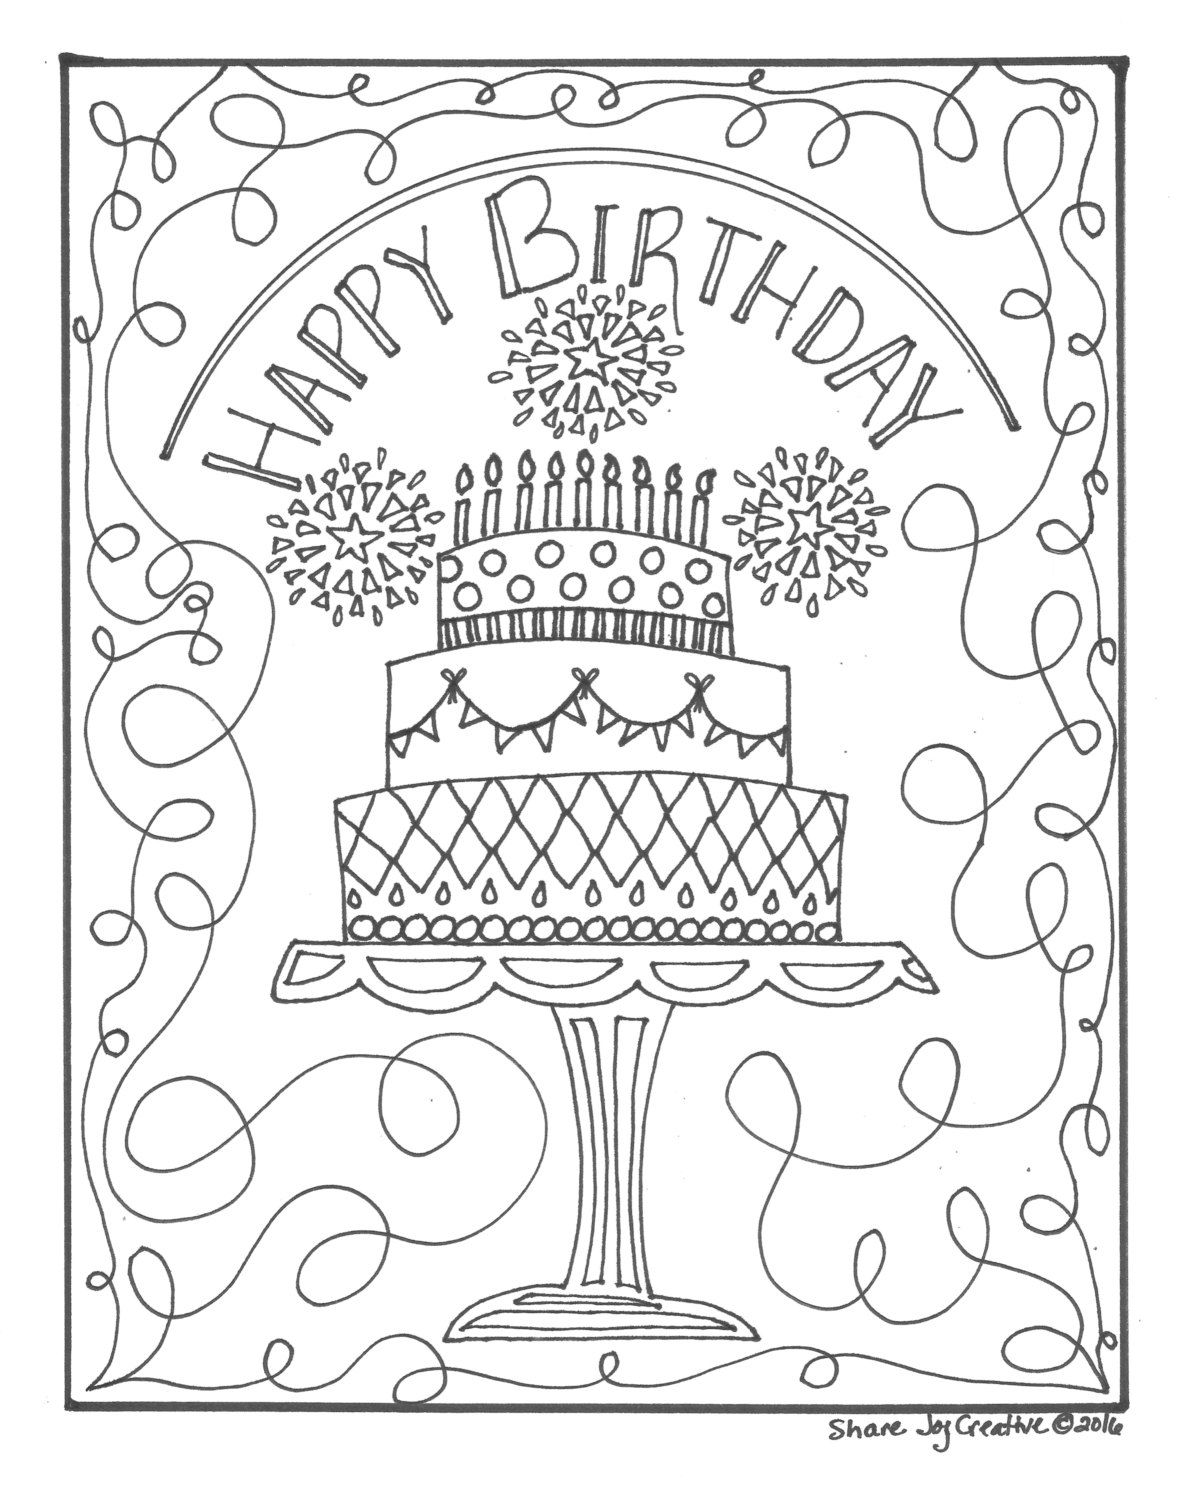 Happy Birthday Cake Coloring Page Printable Coloring Page Etsy In 2021 Happy Birthday Coloring Pages Birthday Coloring Pages Printable Coloring Pages